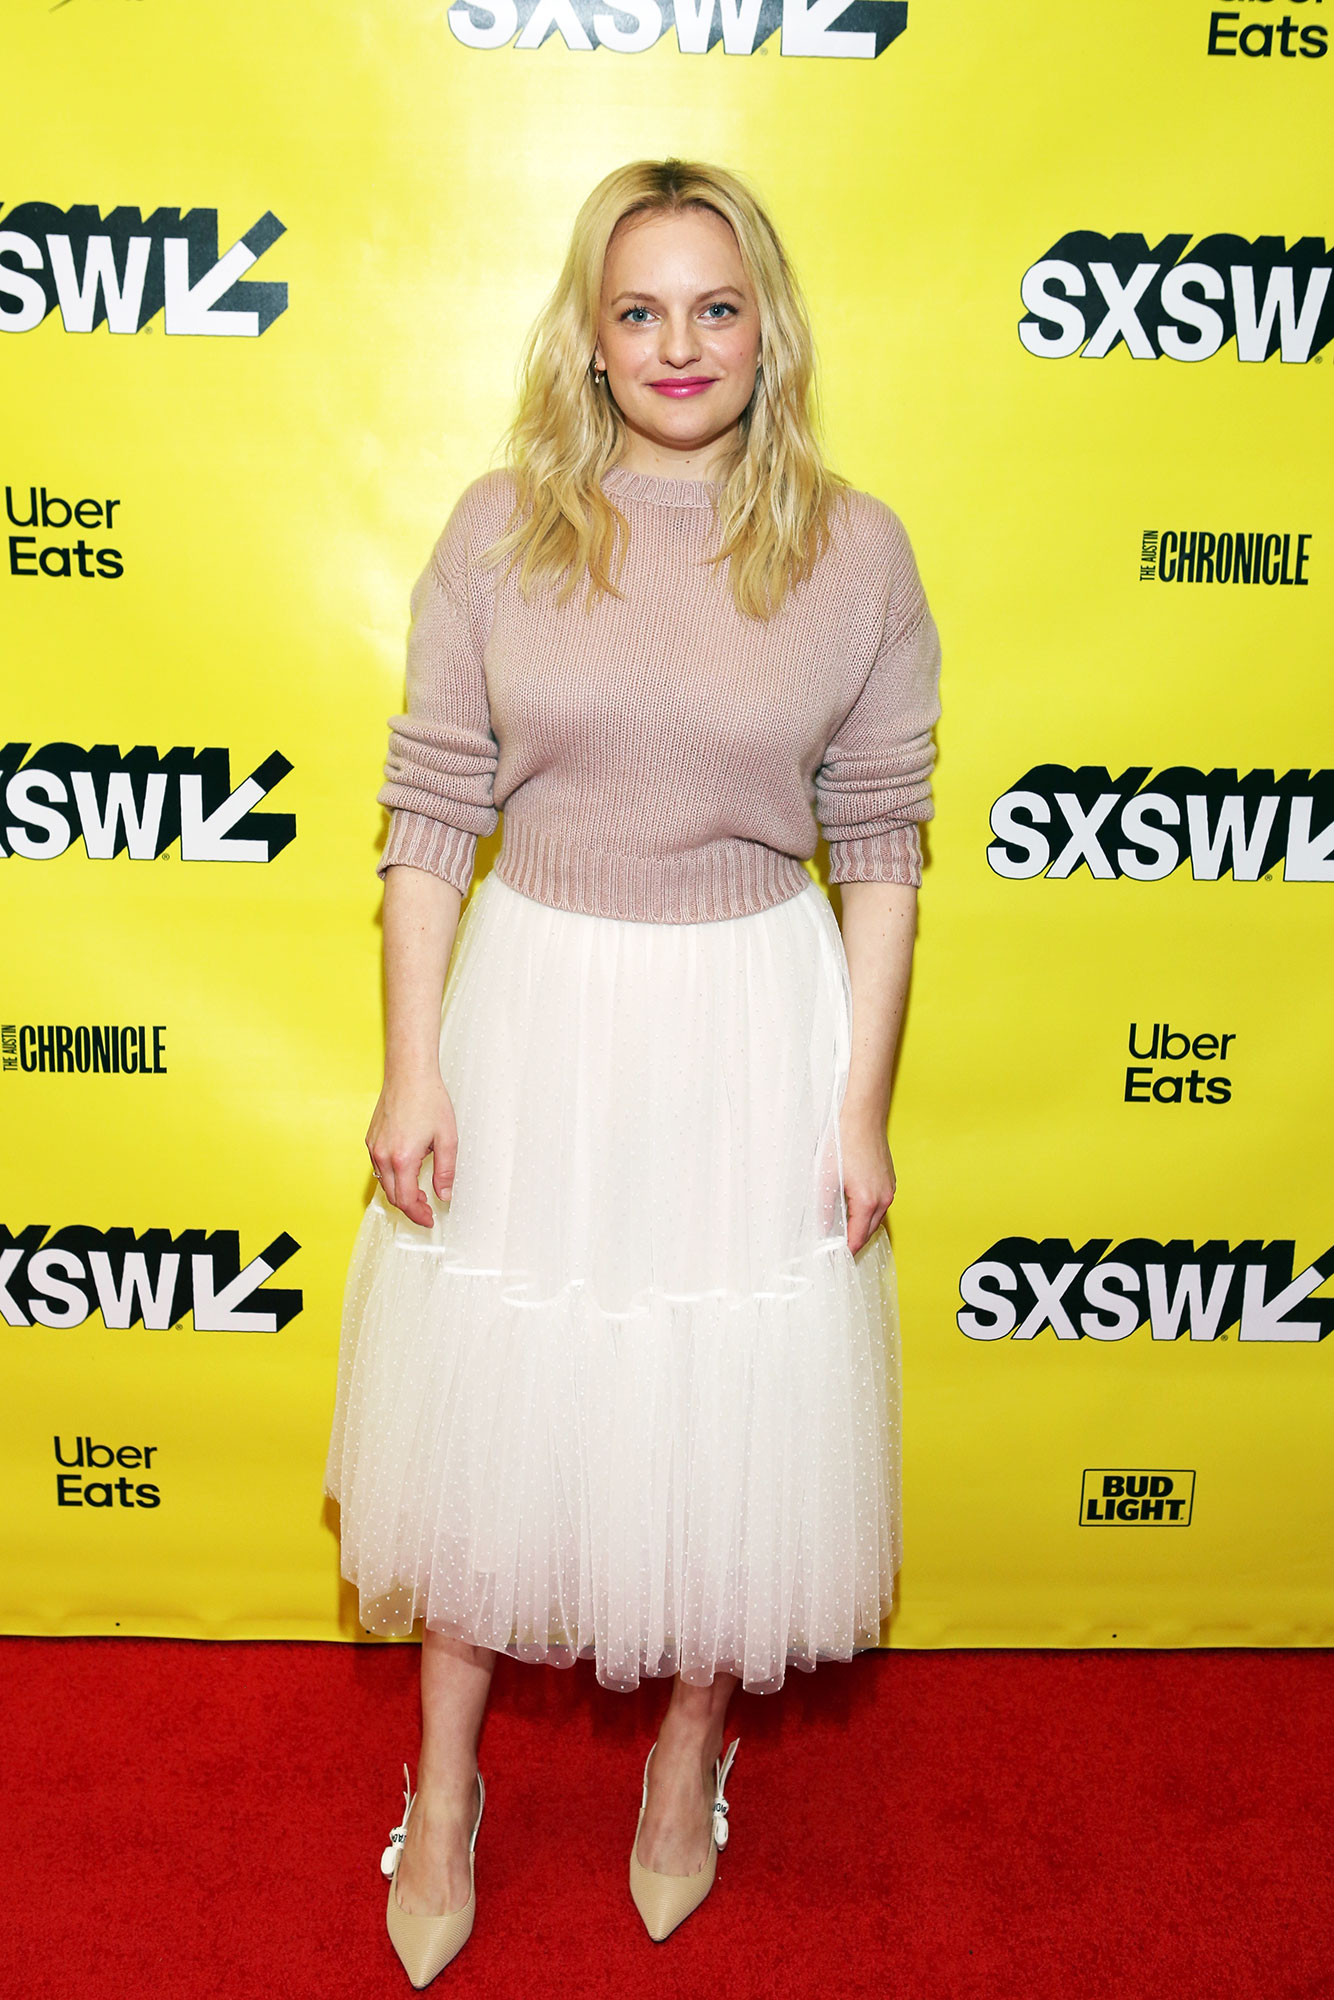 The Stars Bring Their Beauty and Style A-Game to SXSW - The Handmaid's Tale star gave her frilly Dior skirt and kitten heel combo a casual spin thanks to a chunky cropped sweater on Sunday, March 10.